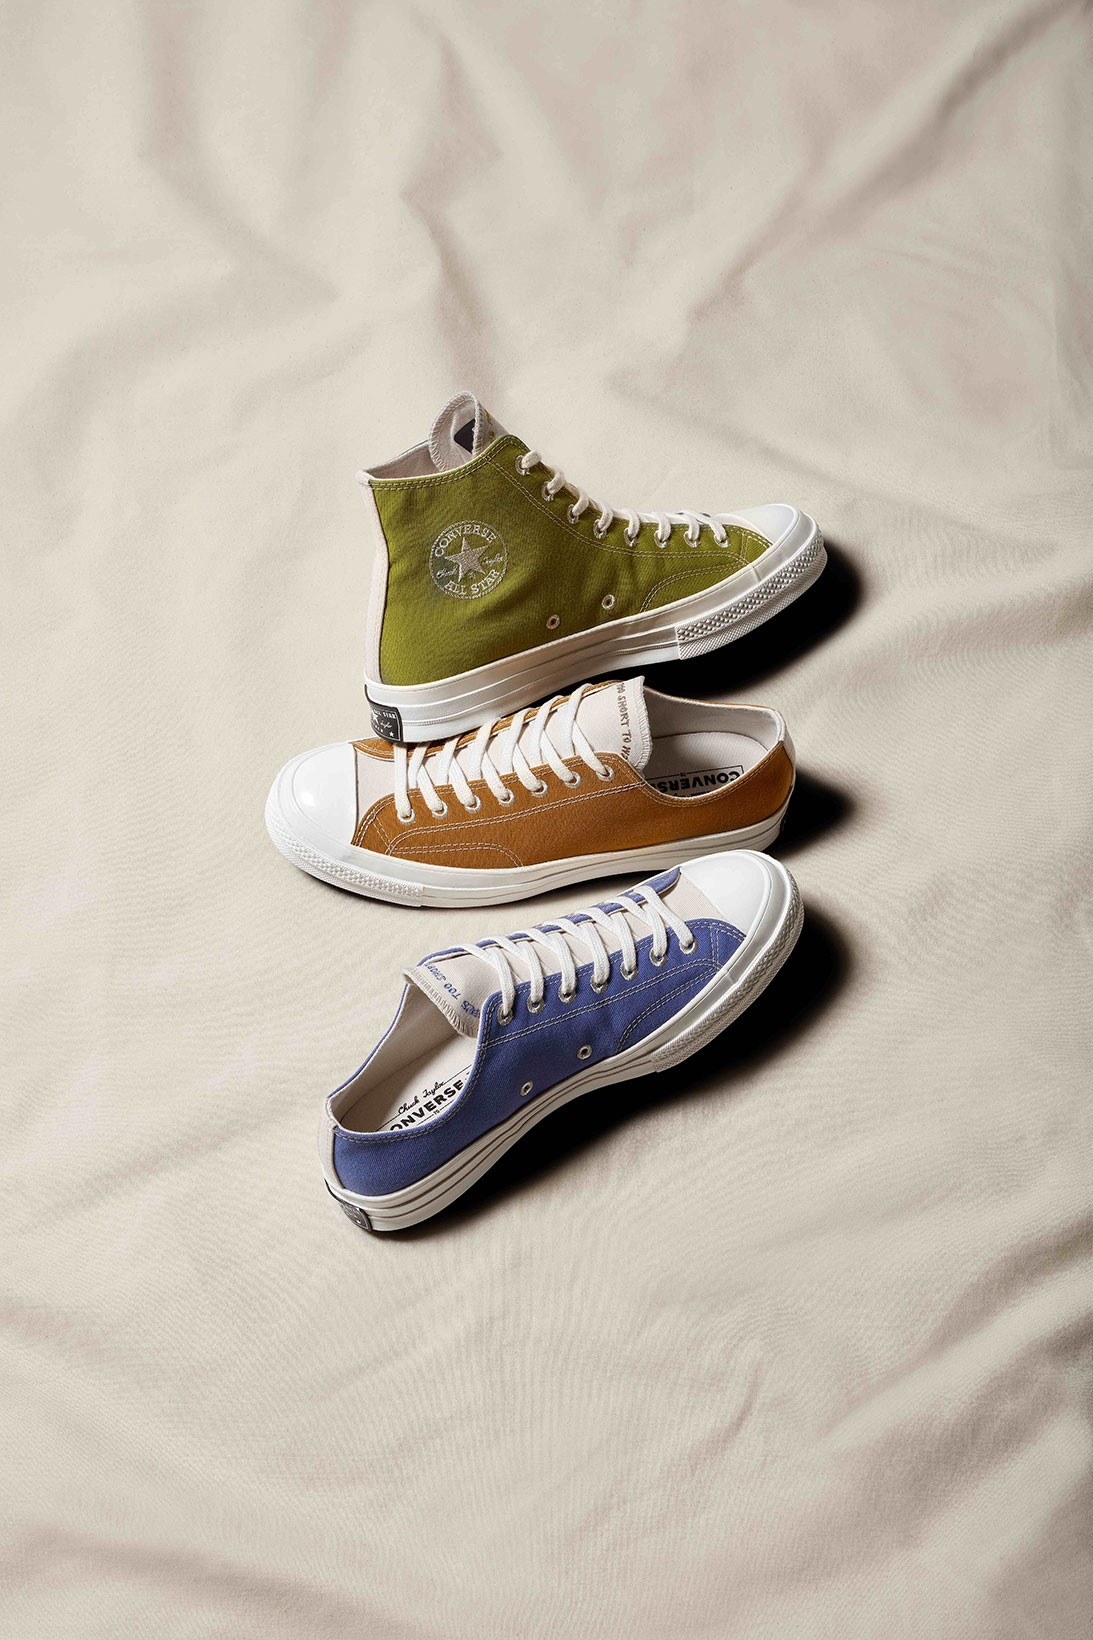 Converse Introduces Sustainable